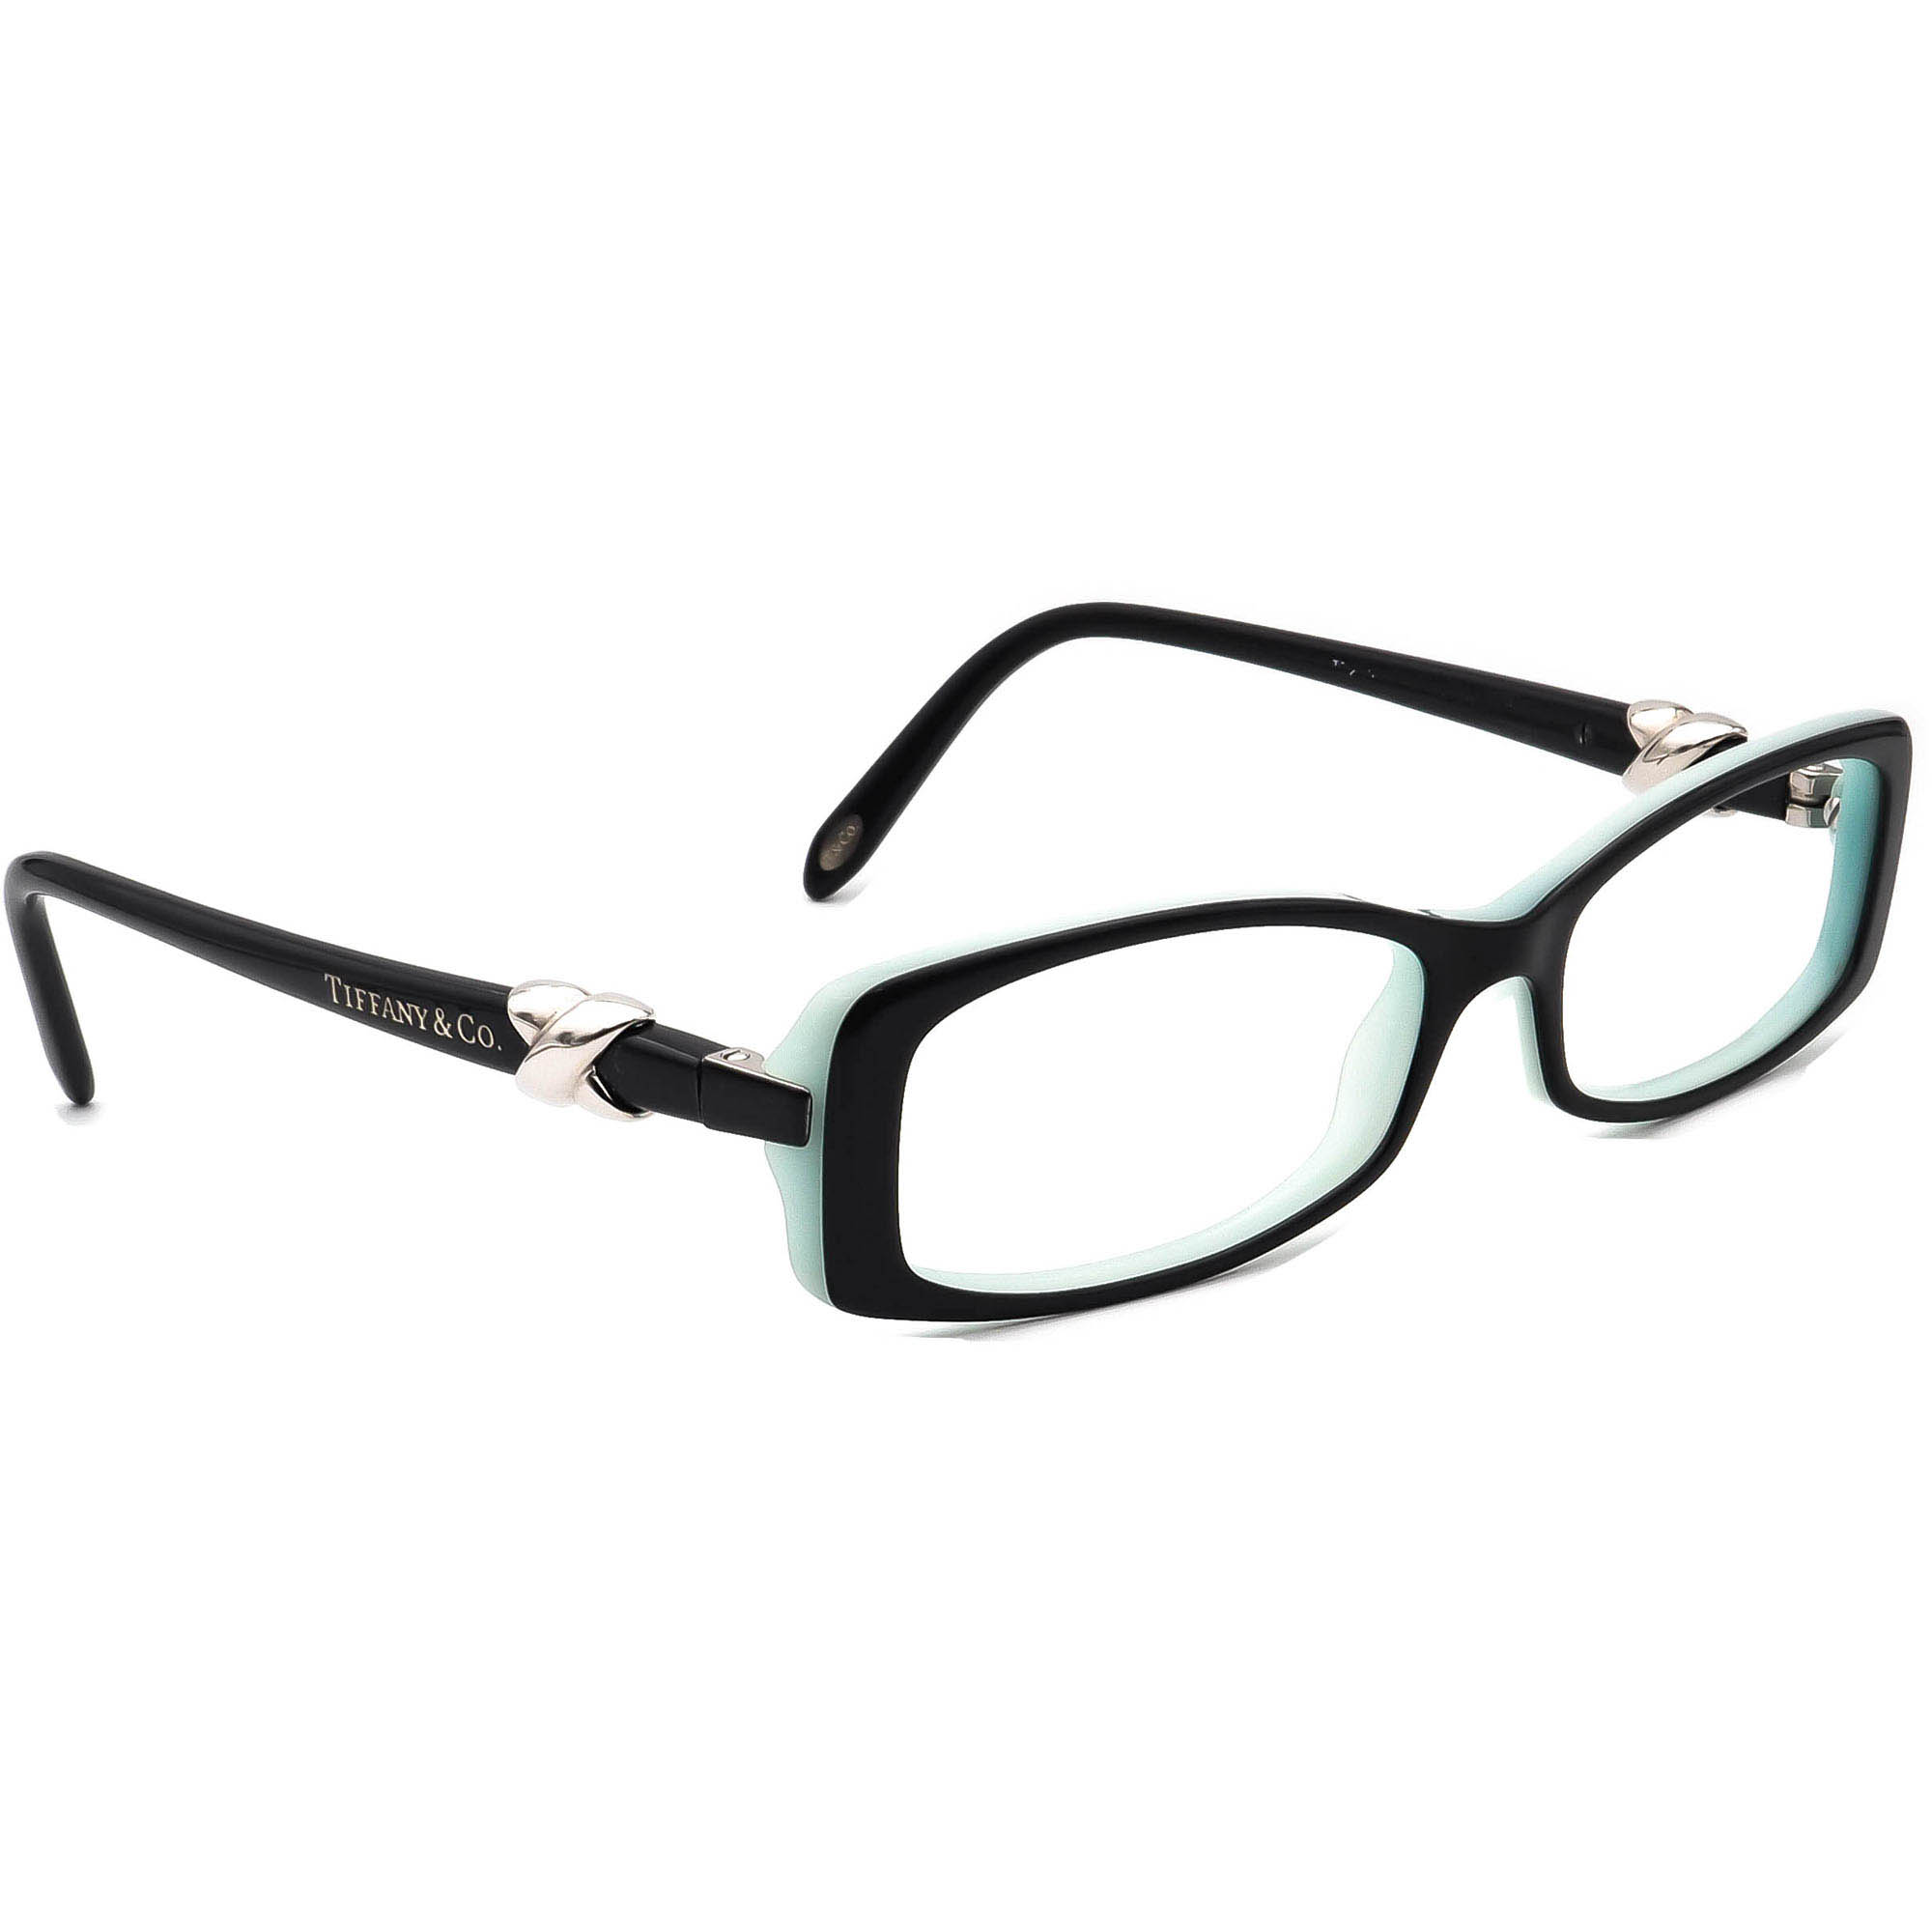 Tiffany & Co. TF 2016 2055 Eyeglasses